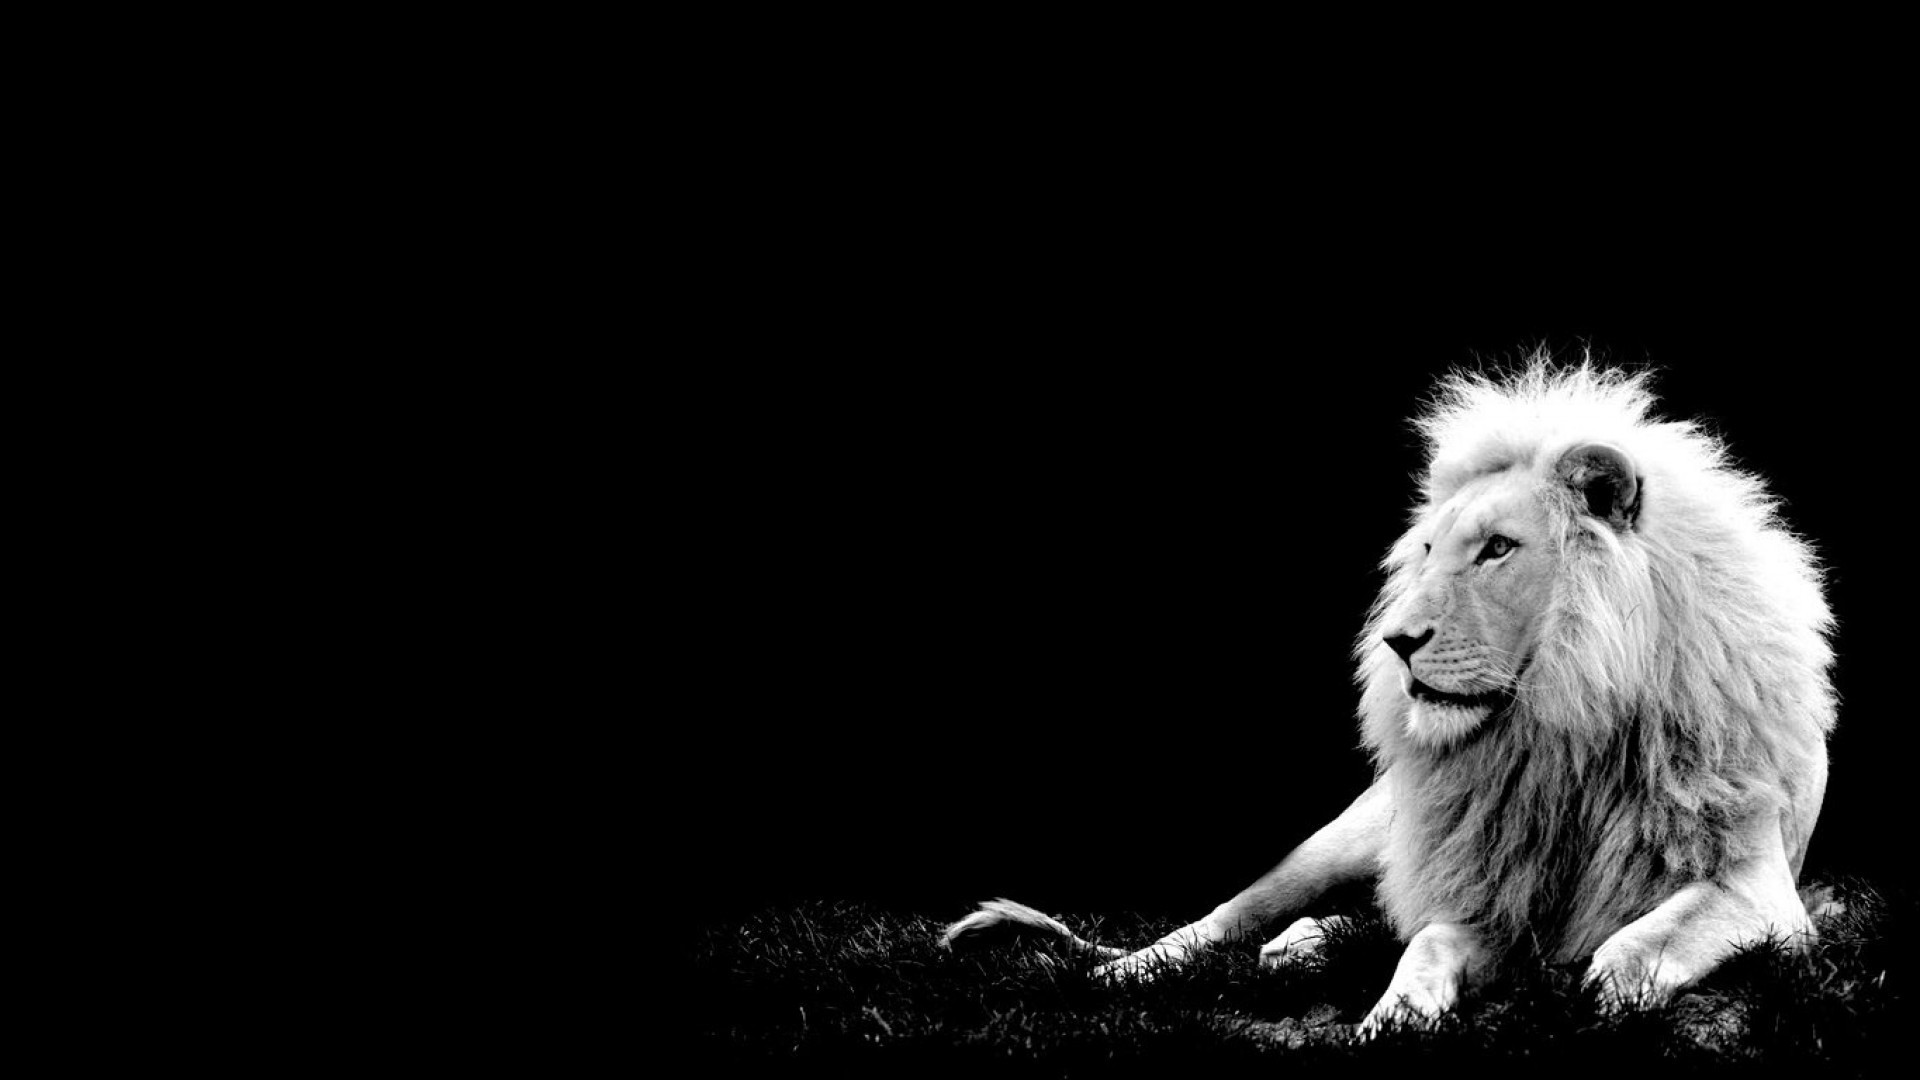 Lion Wallpaper HD Pictures One HD Wallpaper Pictures Backgrounds Lion Image  Wallpapers Wallpapers)